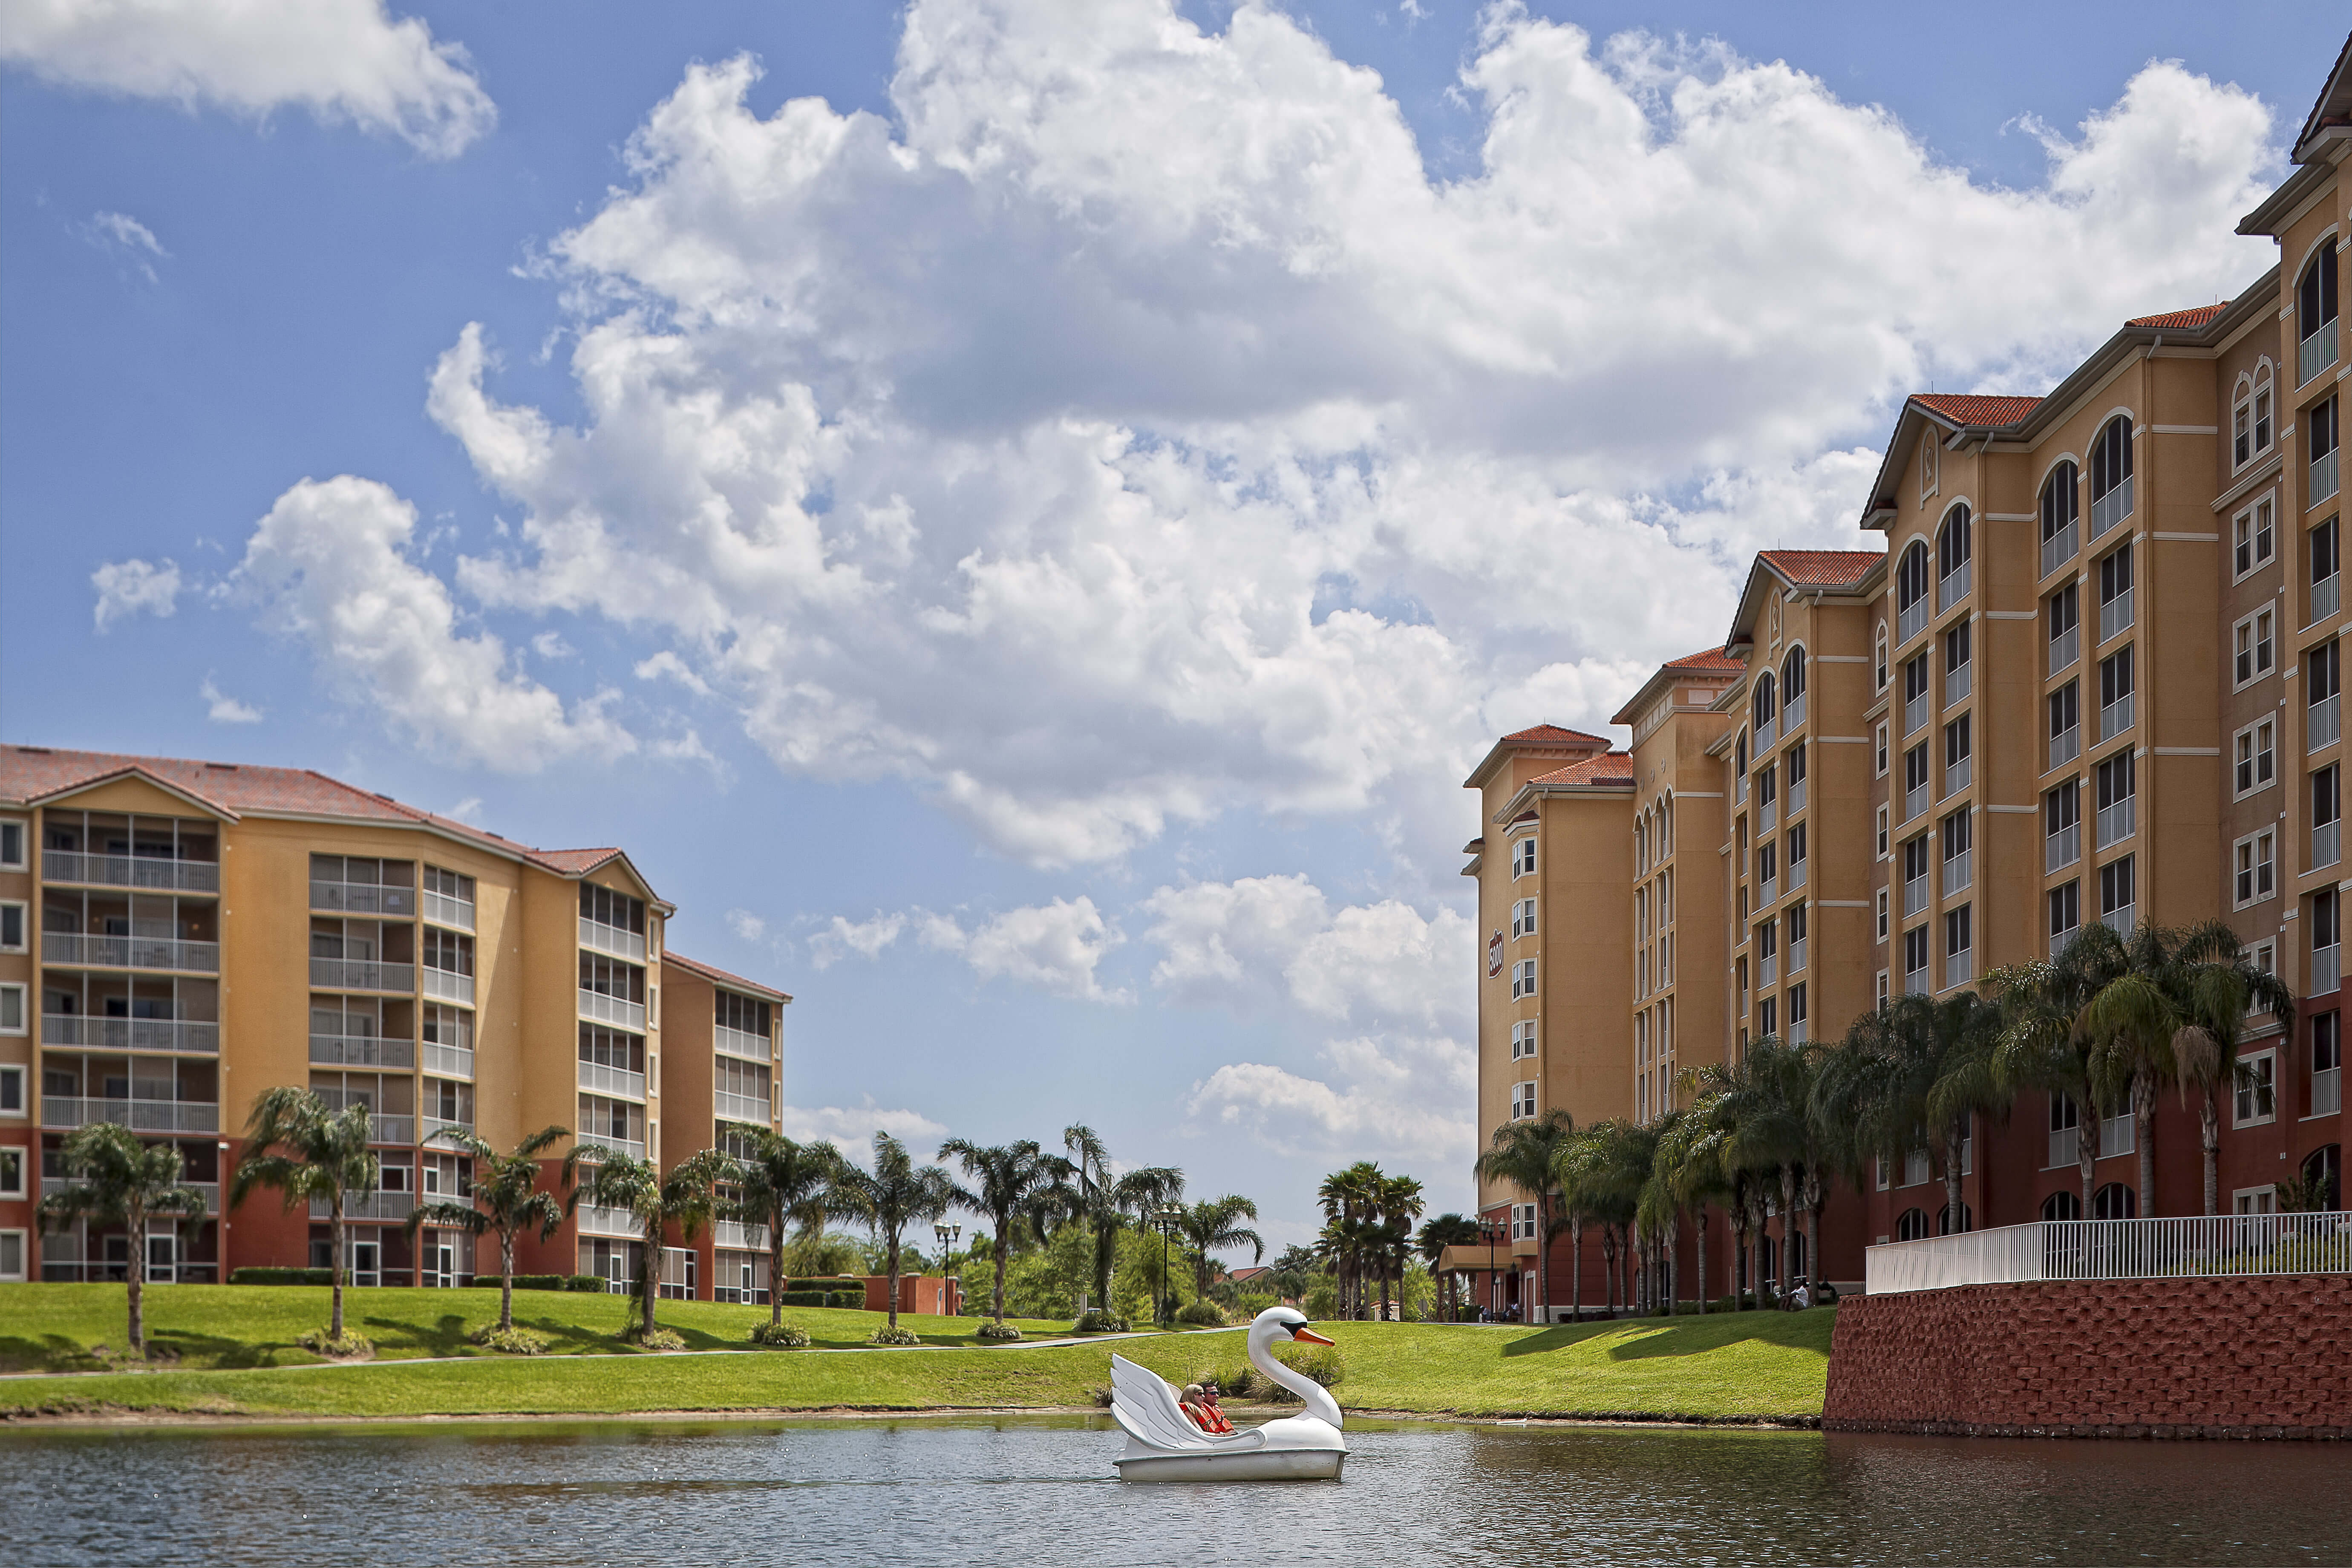 Exterior View of Villas | Westgate Vacation Villas Resort & Spa | Orlando, FL | Westgate Resorts